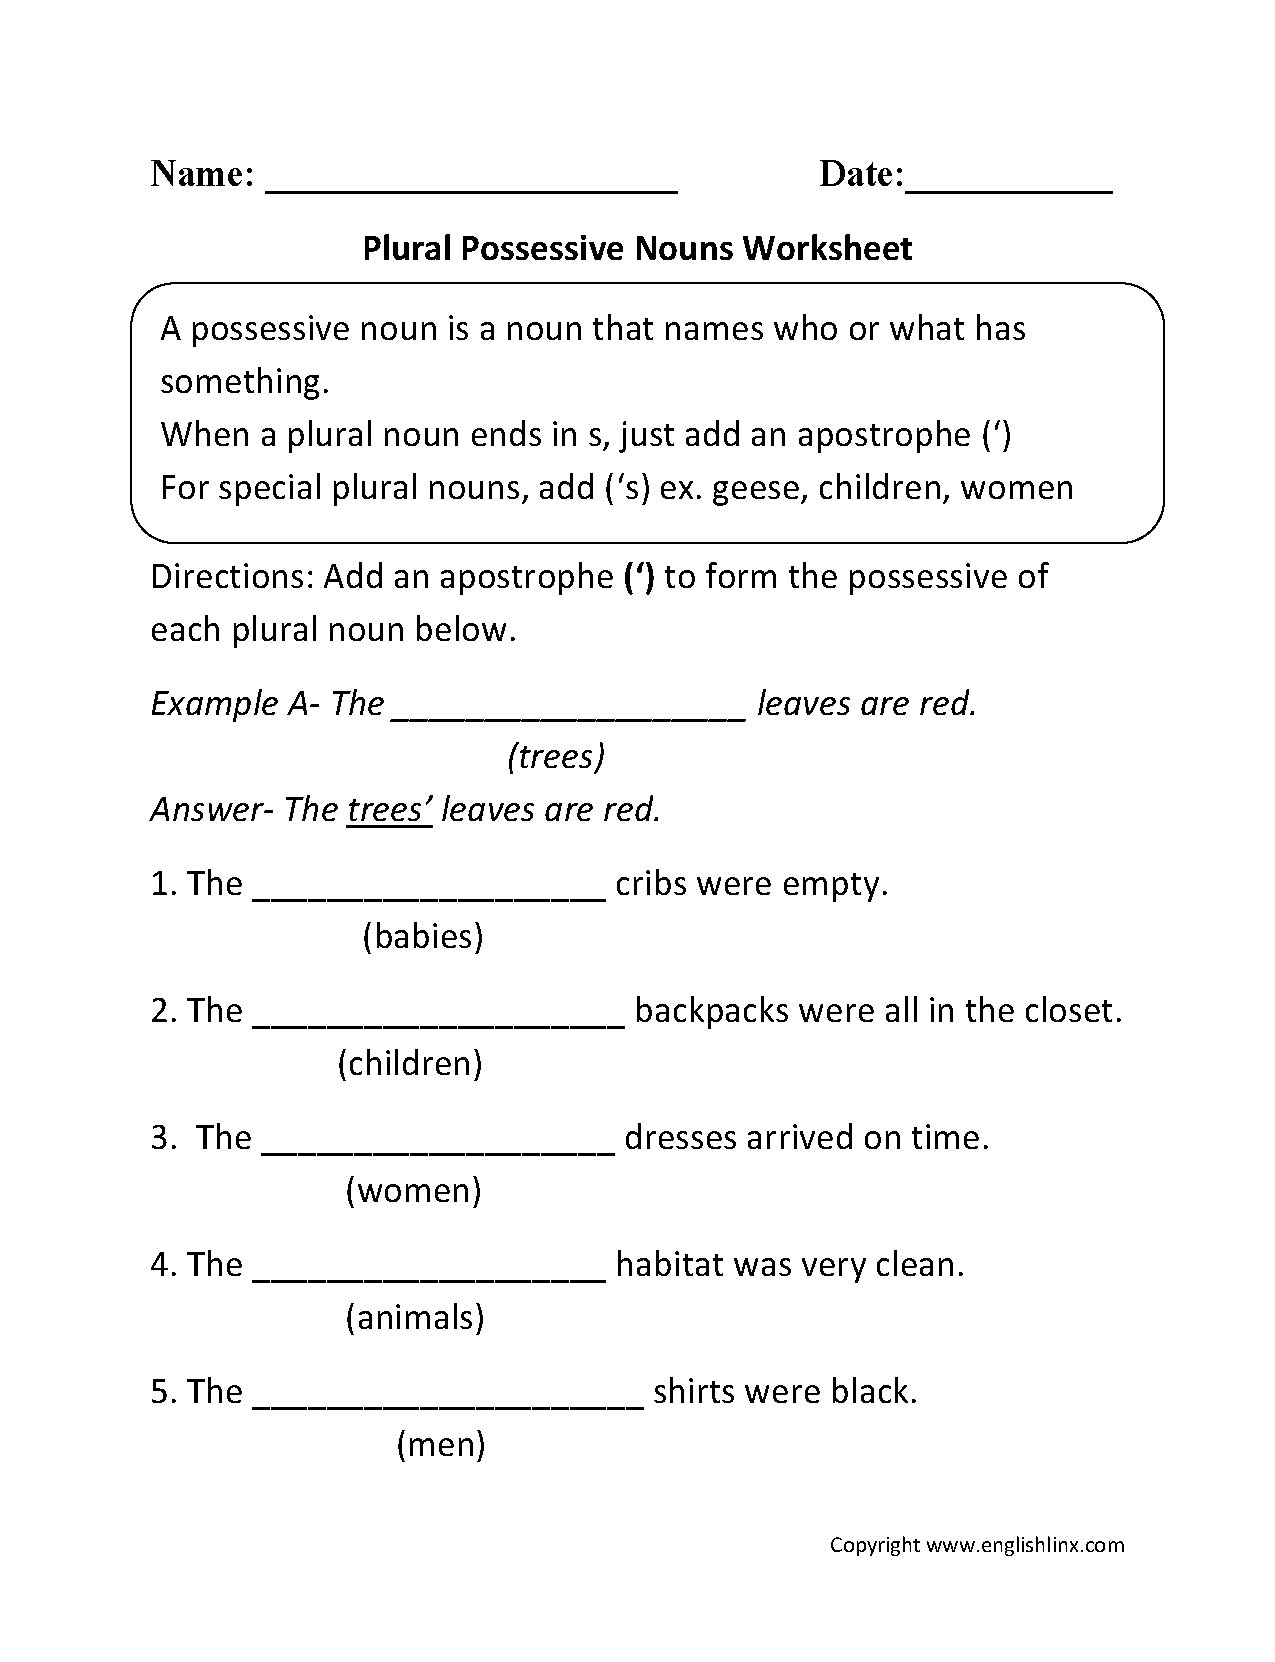 Aldiablosus  Marvellous Nouns Worksheets  Possessive Nouns Worksheets With Licious Possessive Nouns Worksheets With Cute Worksheets For Figurative Language Also Spelling List Worksheets In Addition Worksheet On Reflection And Concave Mirror Worksheet As Well As Long A Silent E Worksheet Additionally Equality And Diversity Worksheets From Englishlinxcom With Aldiablosus  Licious Nouns Worksheets  Possessive Nouns Worksheets With Cute Possessive Nouns Worksheets And Marvellous Worksheets For Figurative Language Also Spelling List Worksheets In Addition Worksheet On Reflection From Englishlinxcom